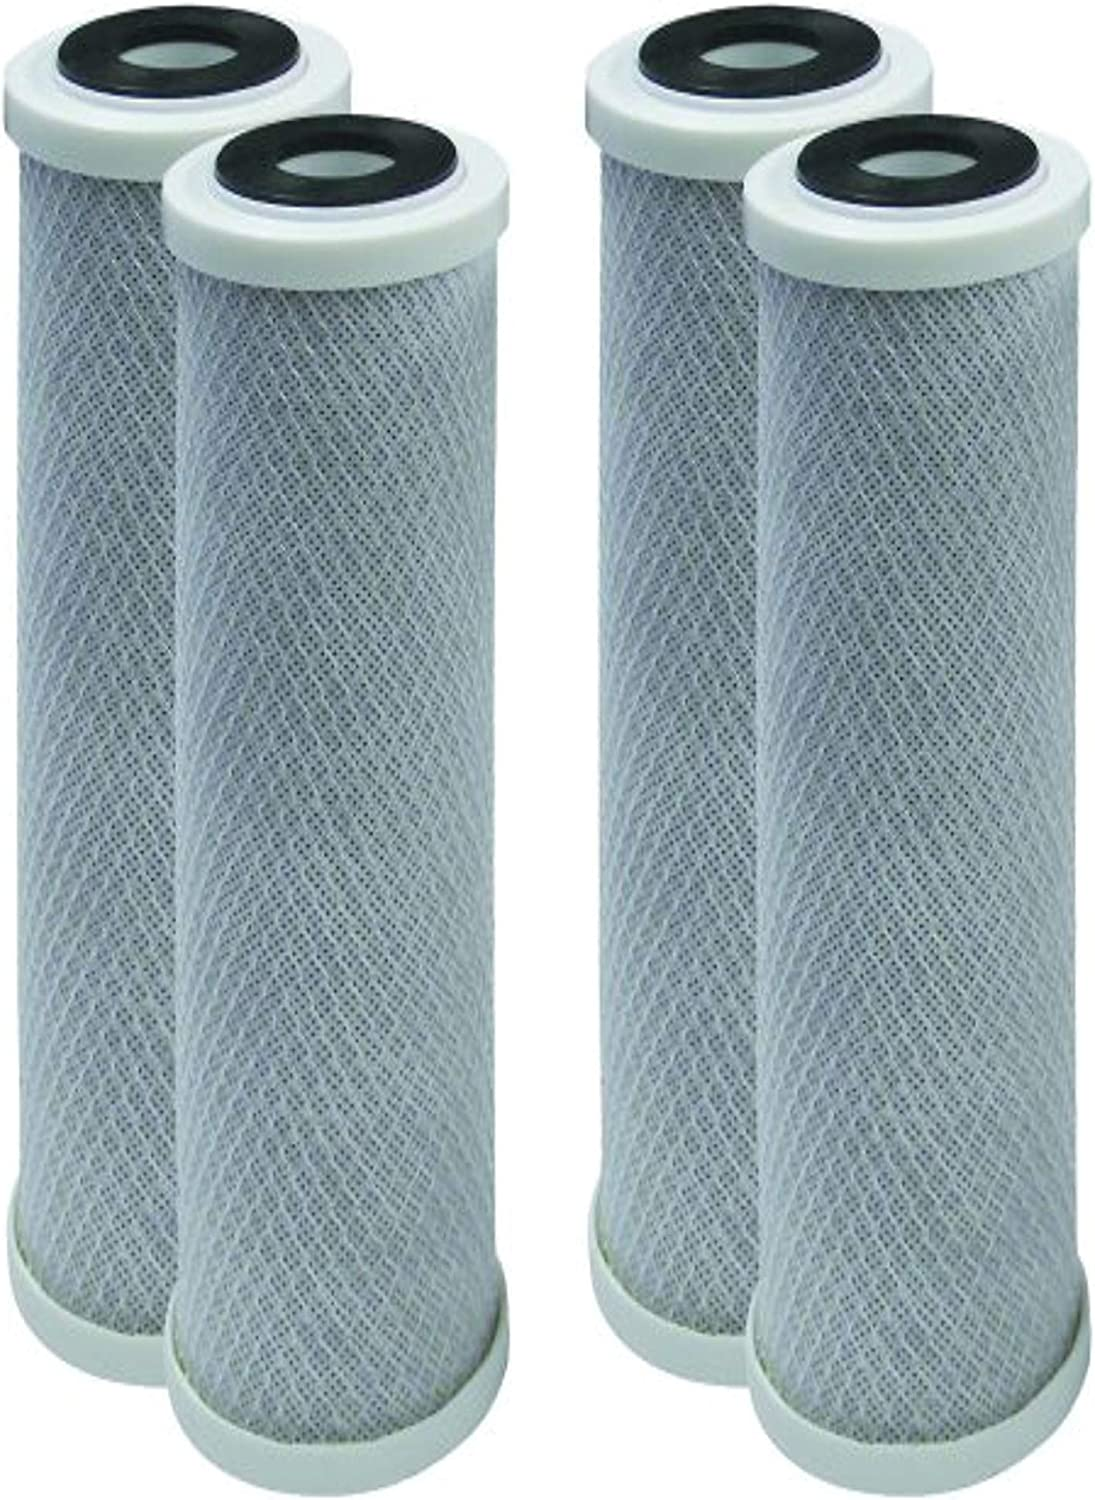 EcoPure EPW2F CompatiblePremium Fact Universal Whole Direct store Home Limited time cheap sale Filter